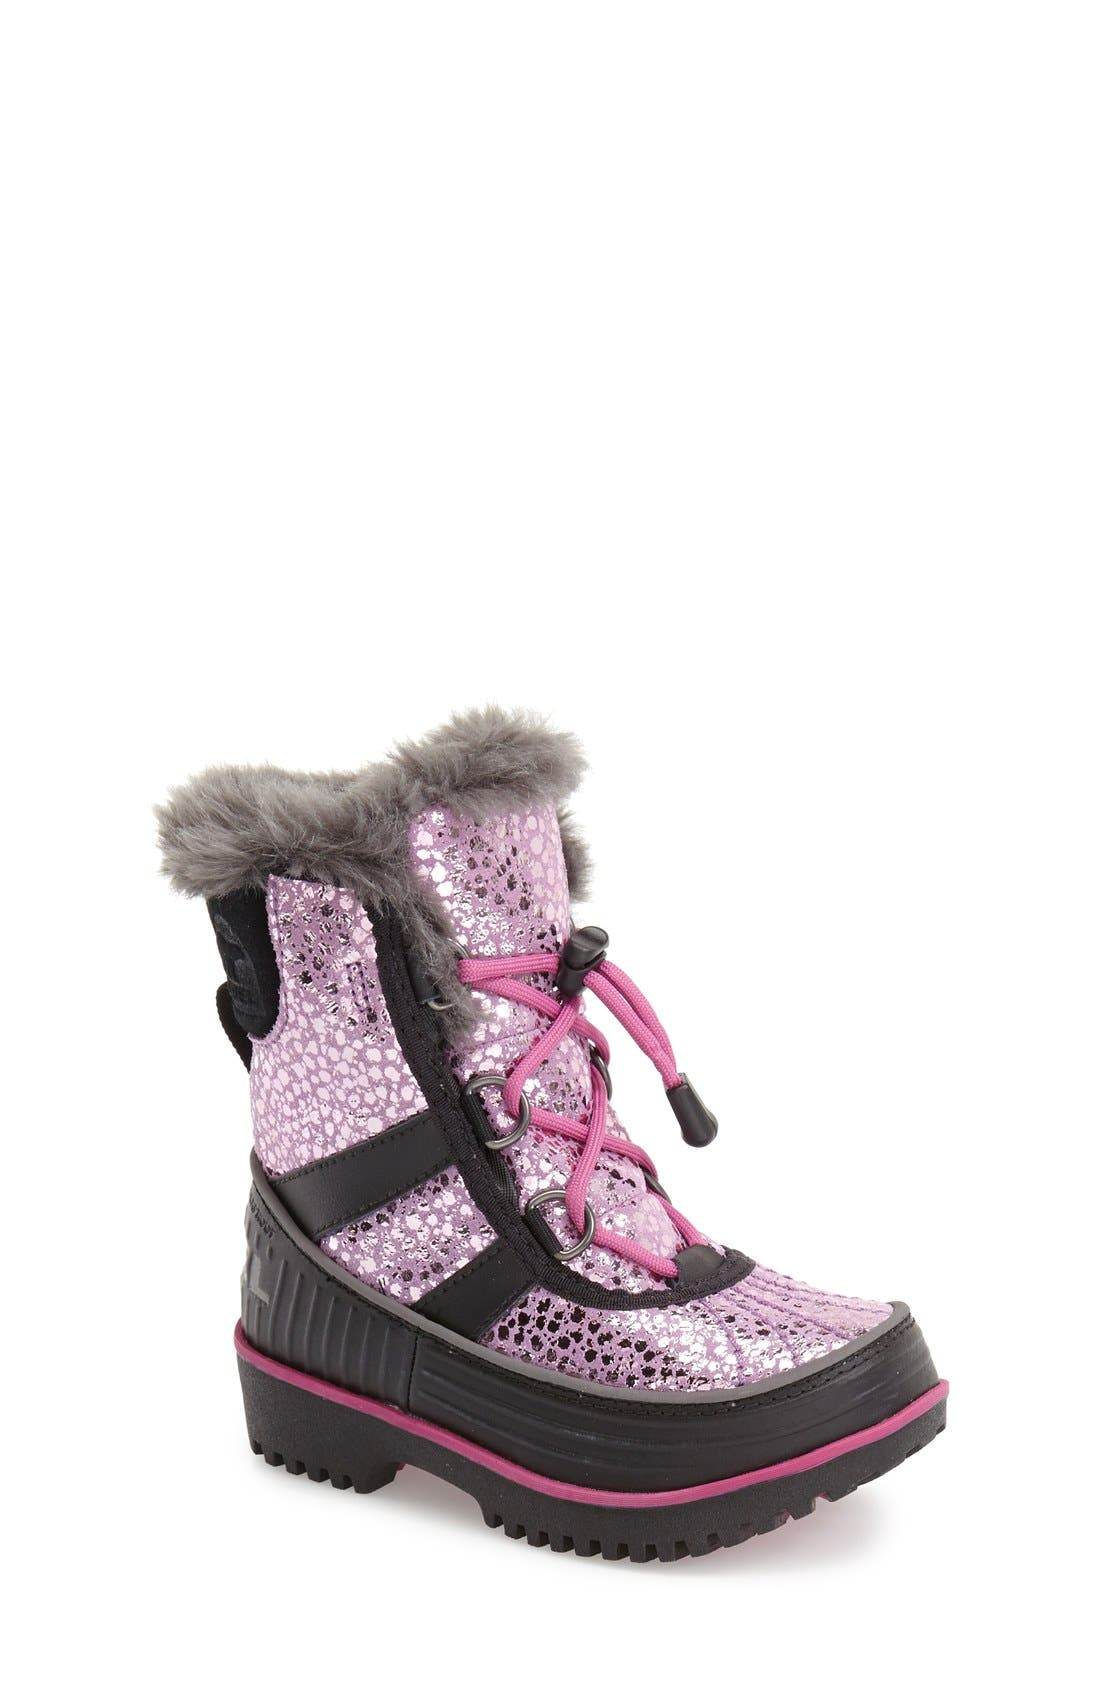 Main Image - SOREL 'Tivoli II' Waterproof Snow Boot (Toddler & Little Kid)